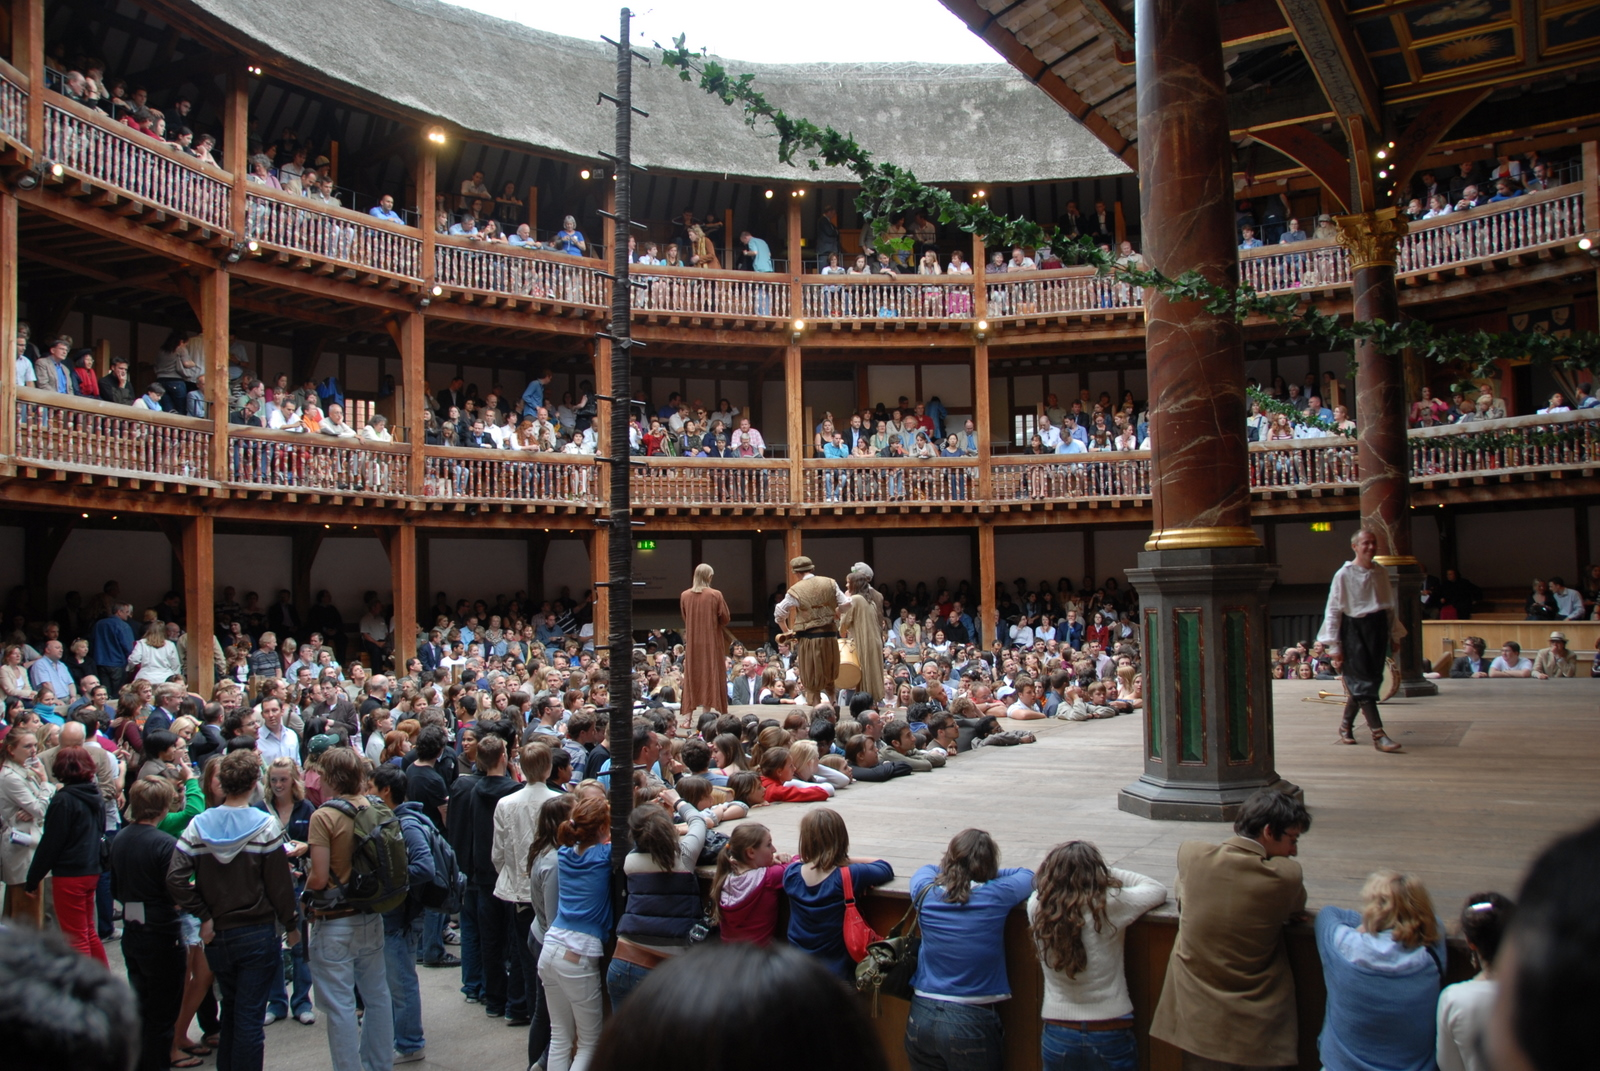 a history of the globe theater in london The globe theater, where most of shakespeare's plays debuted, burned down on this day in 1613 the globe was built by shakespeare's acting company, the lord.